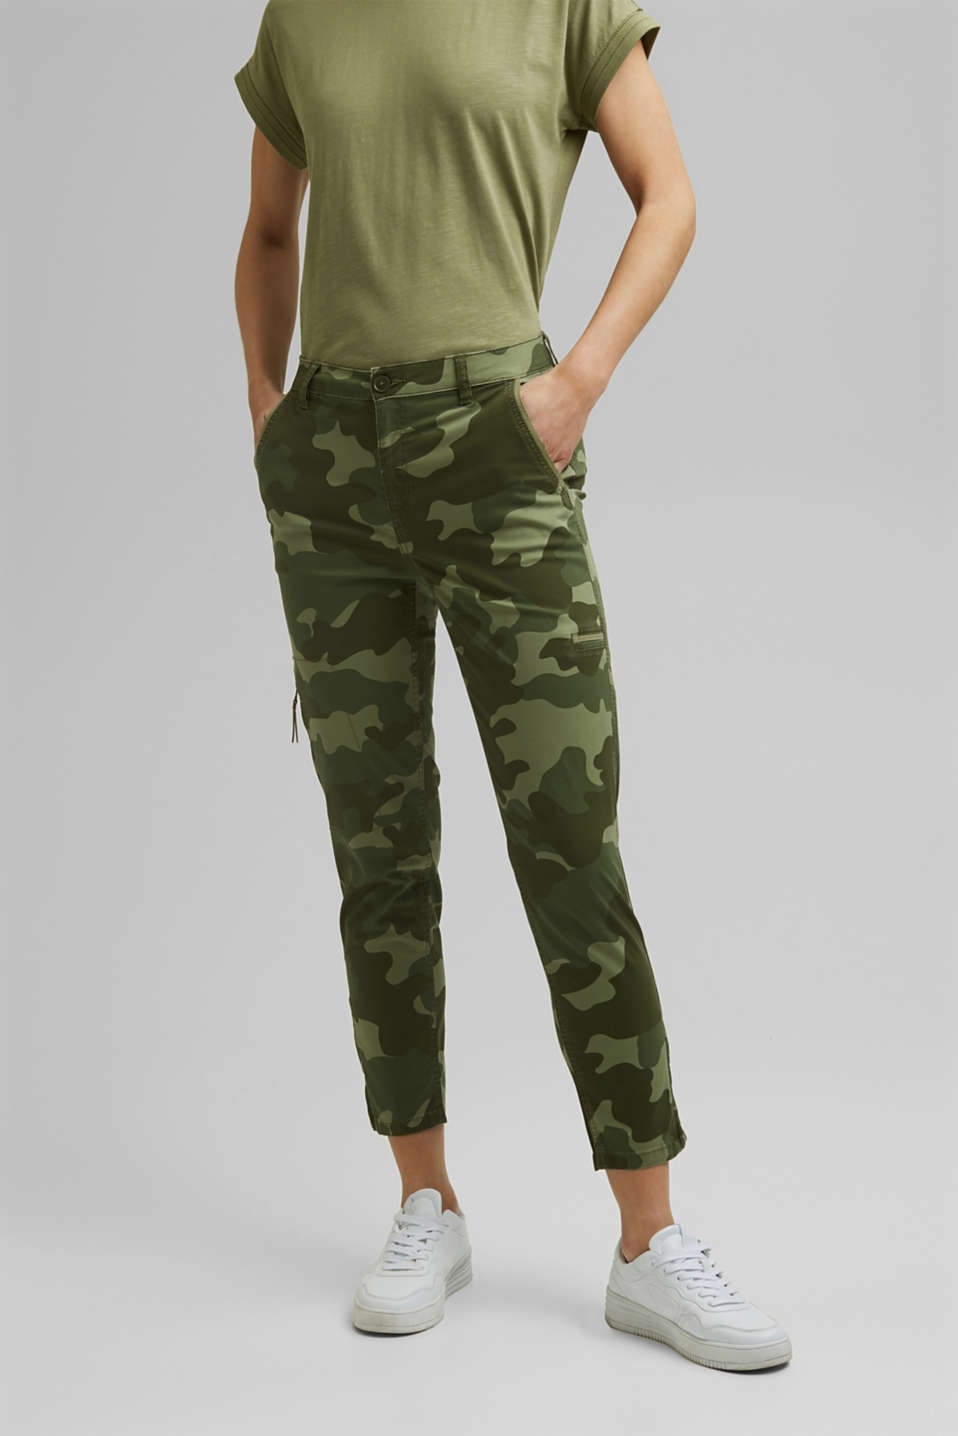 Esprit - Camouflage cargo trousers made of pima cotton